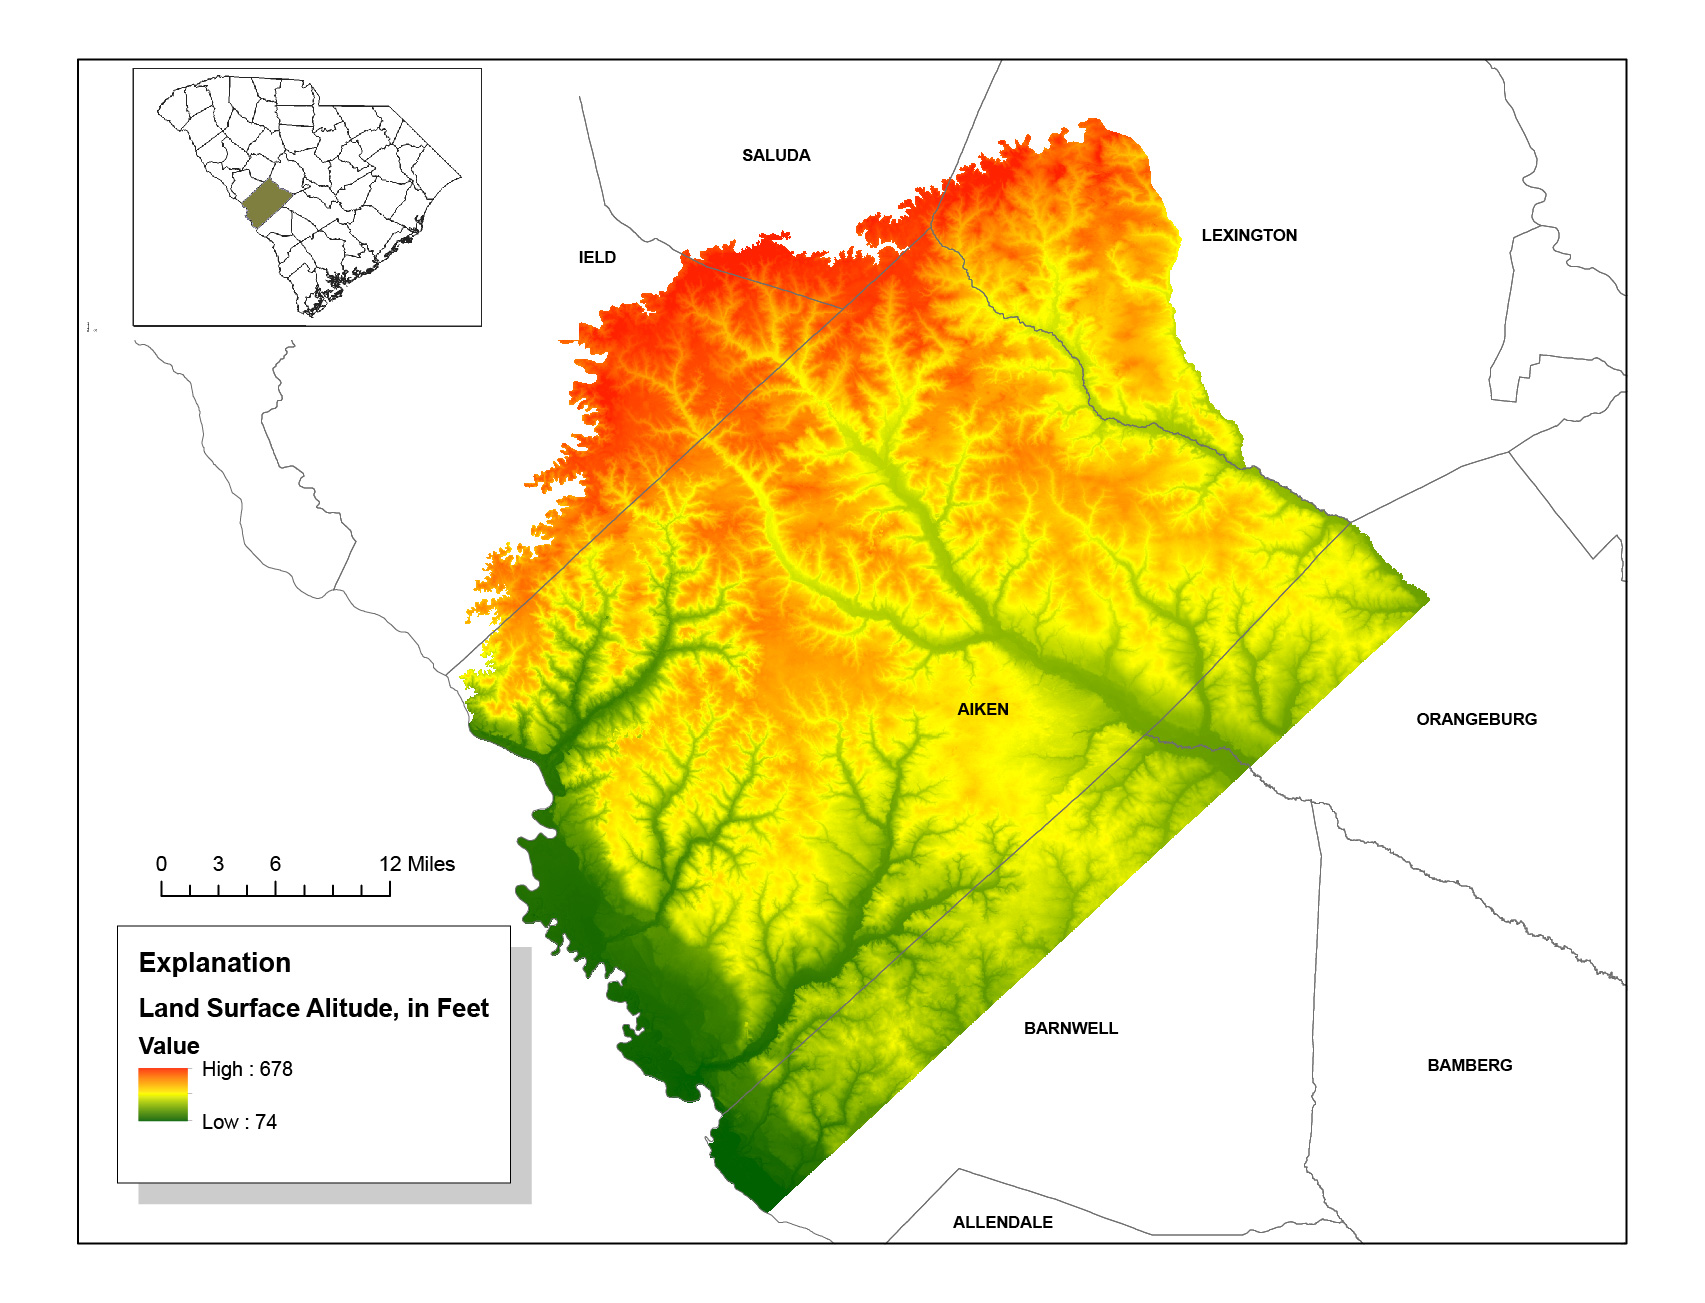 Land surface altitudes of the Aiken County, South Carolina, area derived from lidar.